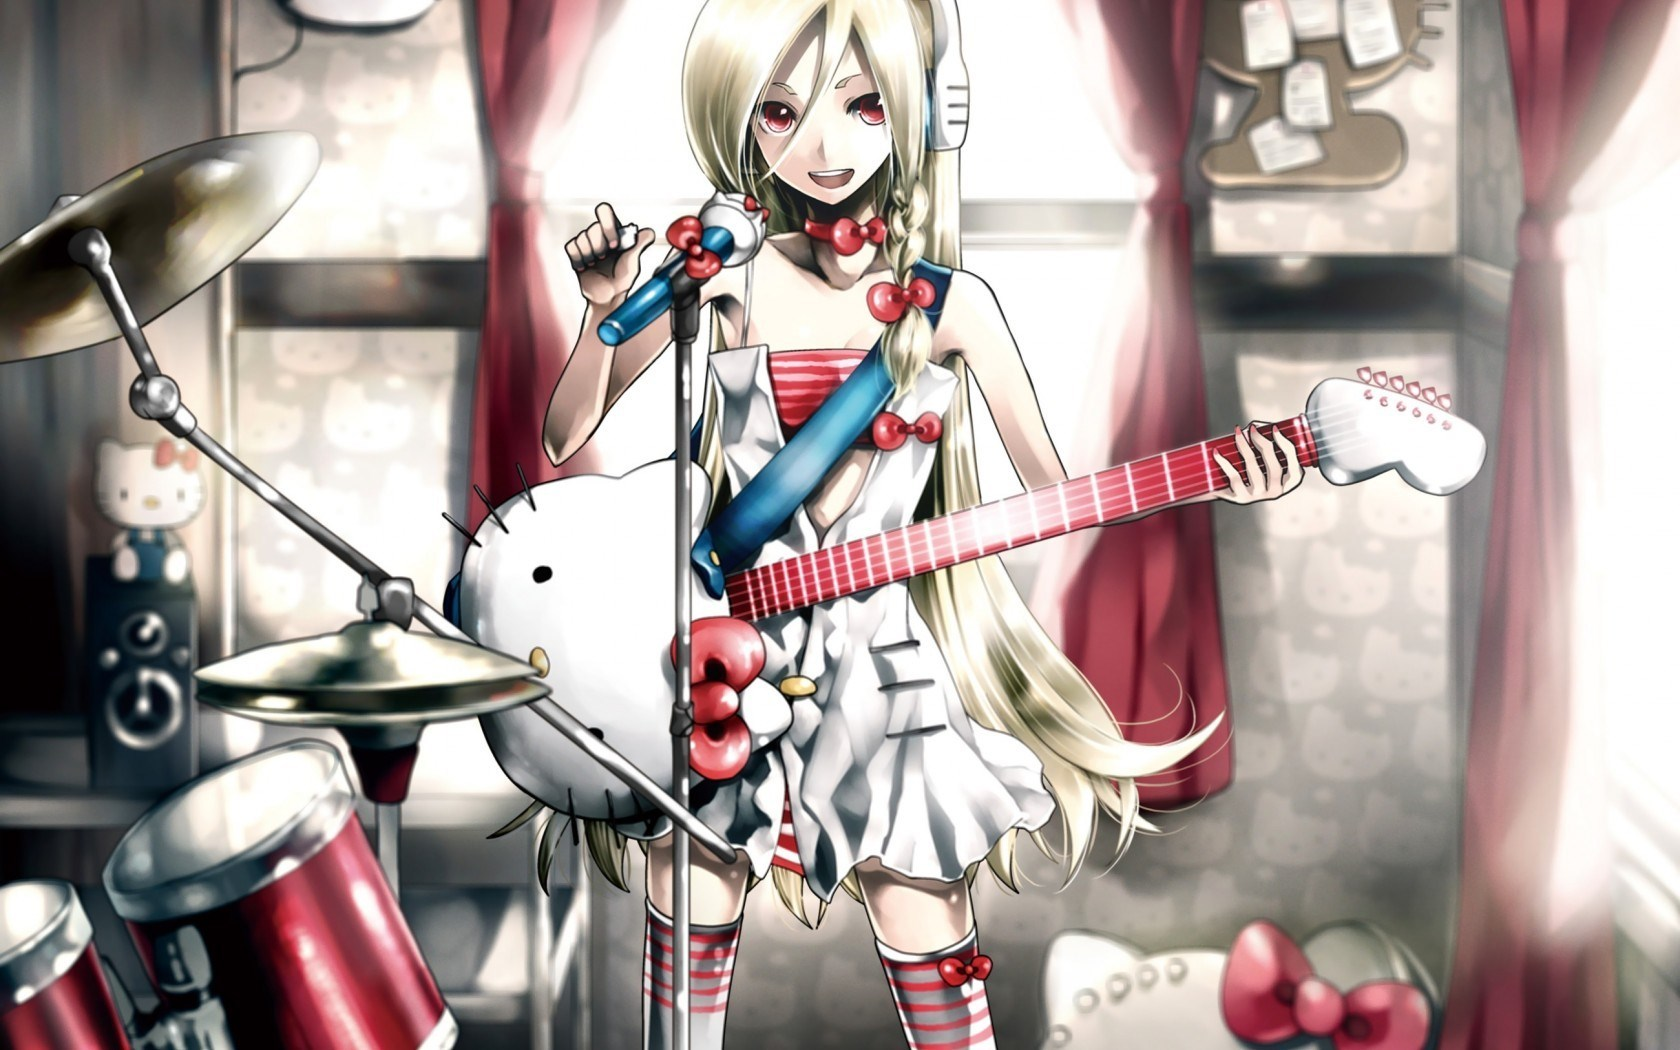 Hair blond drummer quotes quotesgram - Anime wallpaper music ...